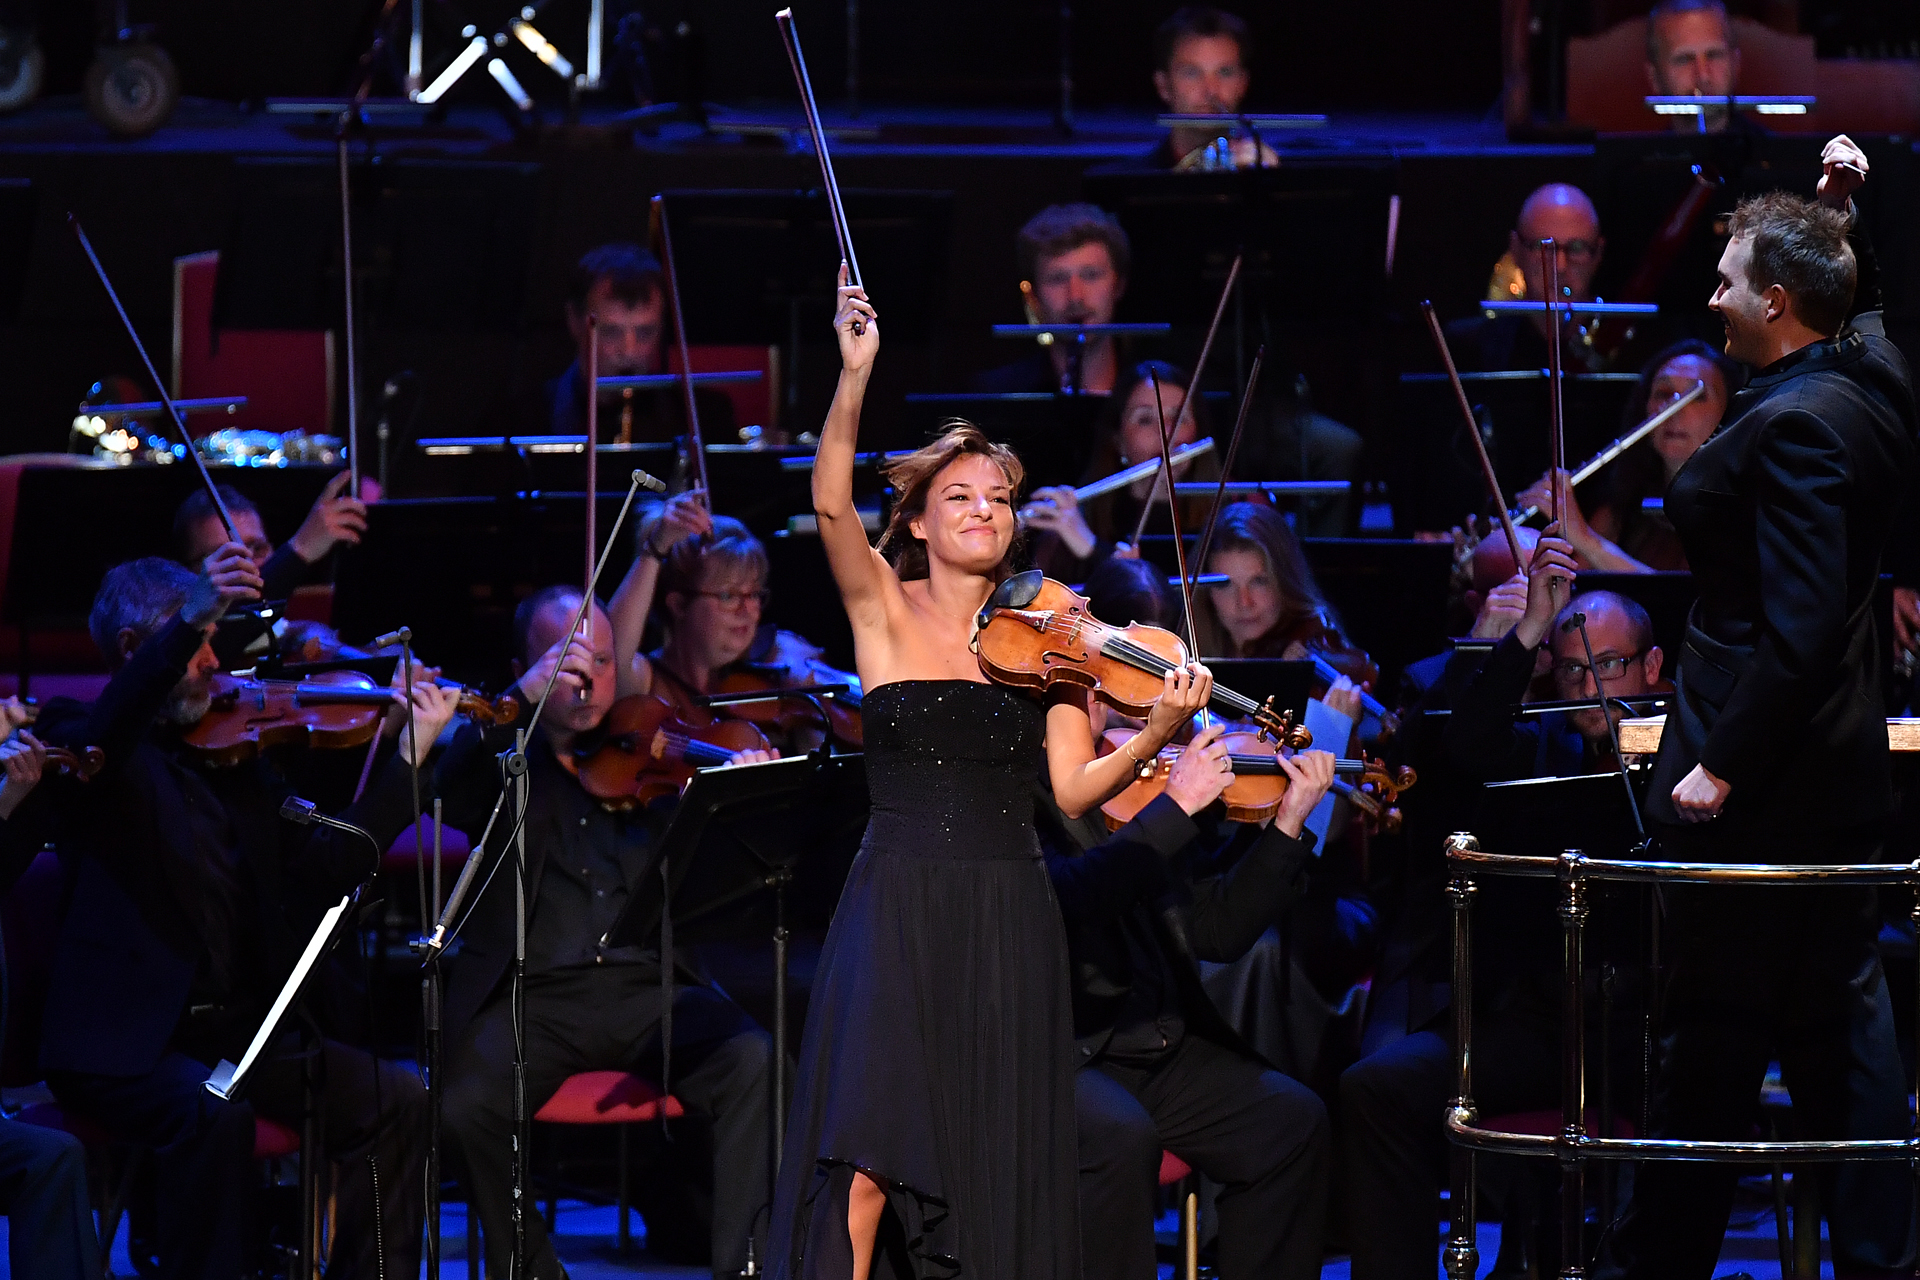 Nicola Benedetti at the Young Musician Prom